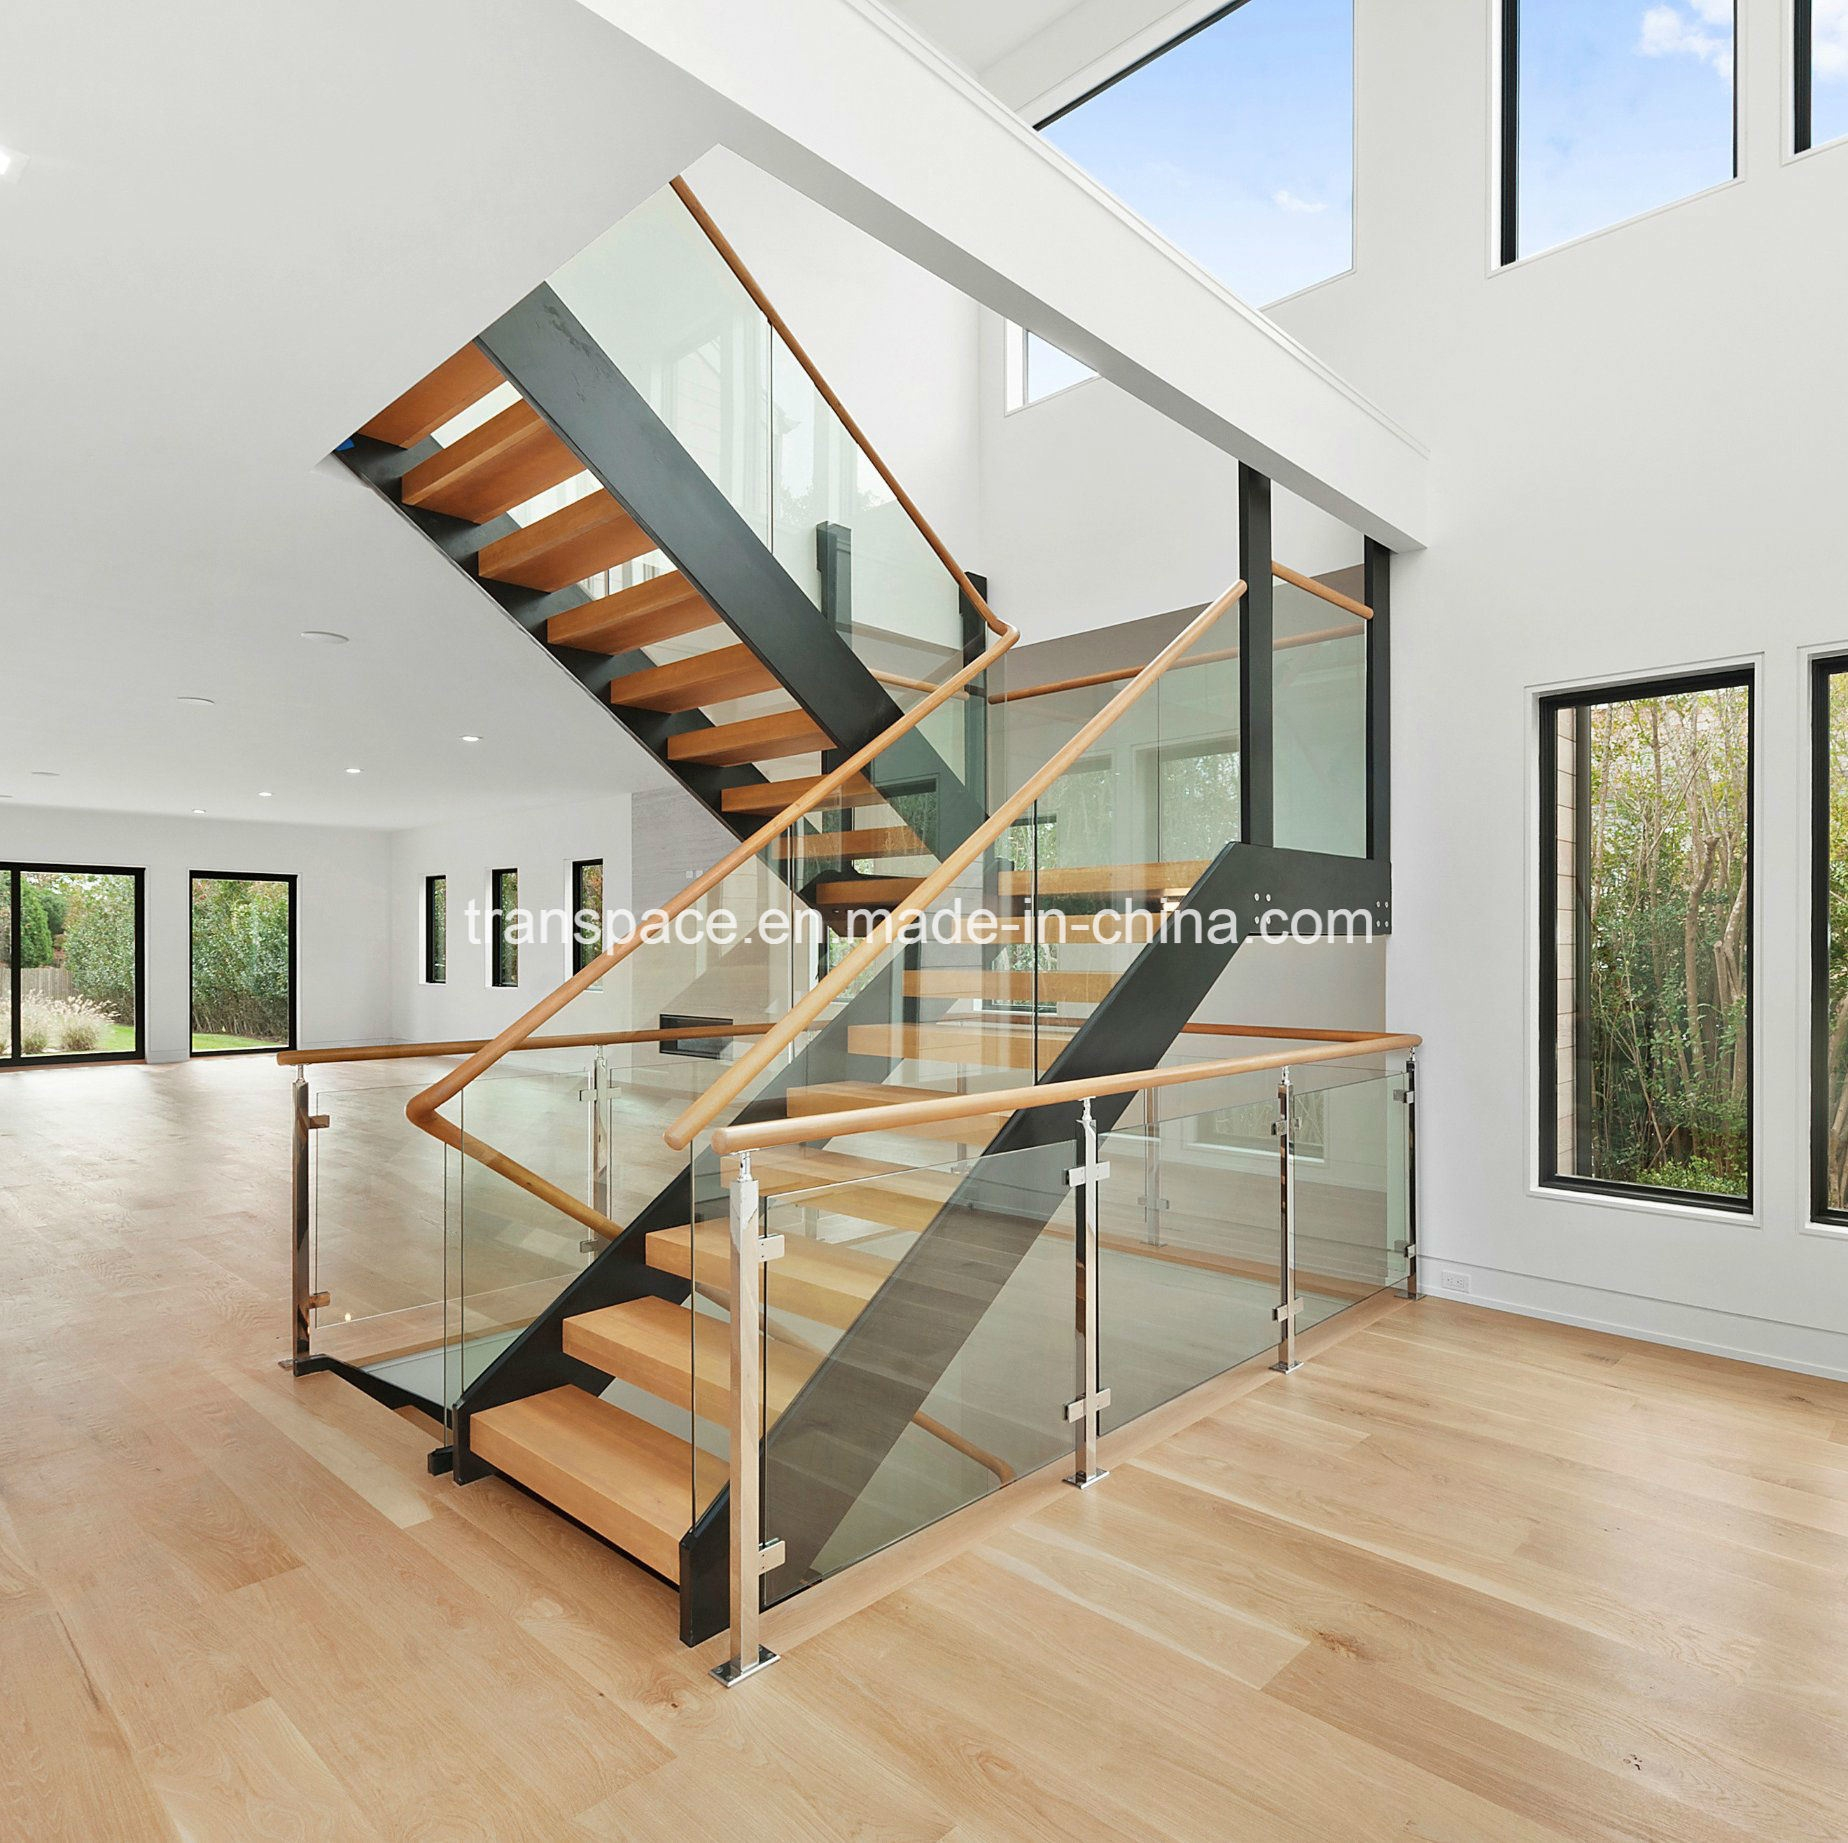 China Straight Steel Wood Stair With Tempered Glass Railing   Wood And Glass Staircase   New   Spiral   Stair Railing   Design   Stair Case